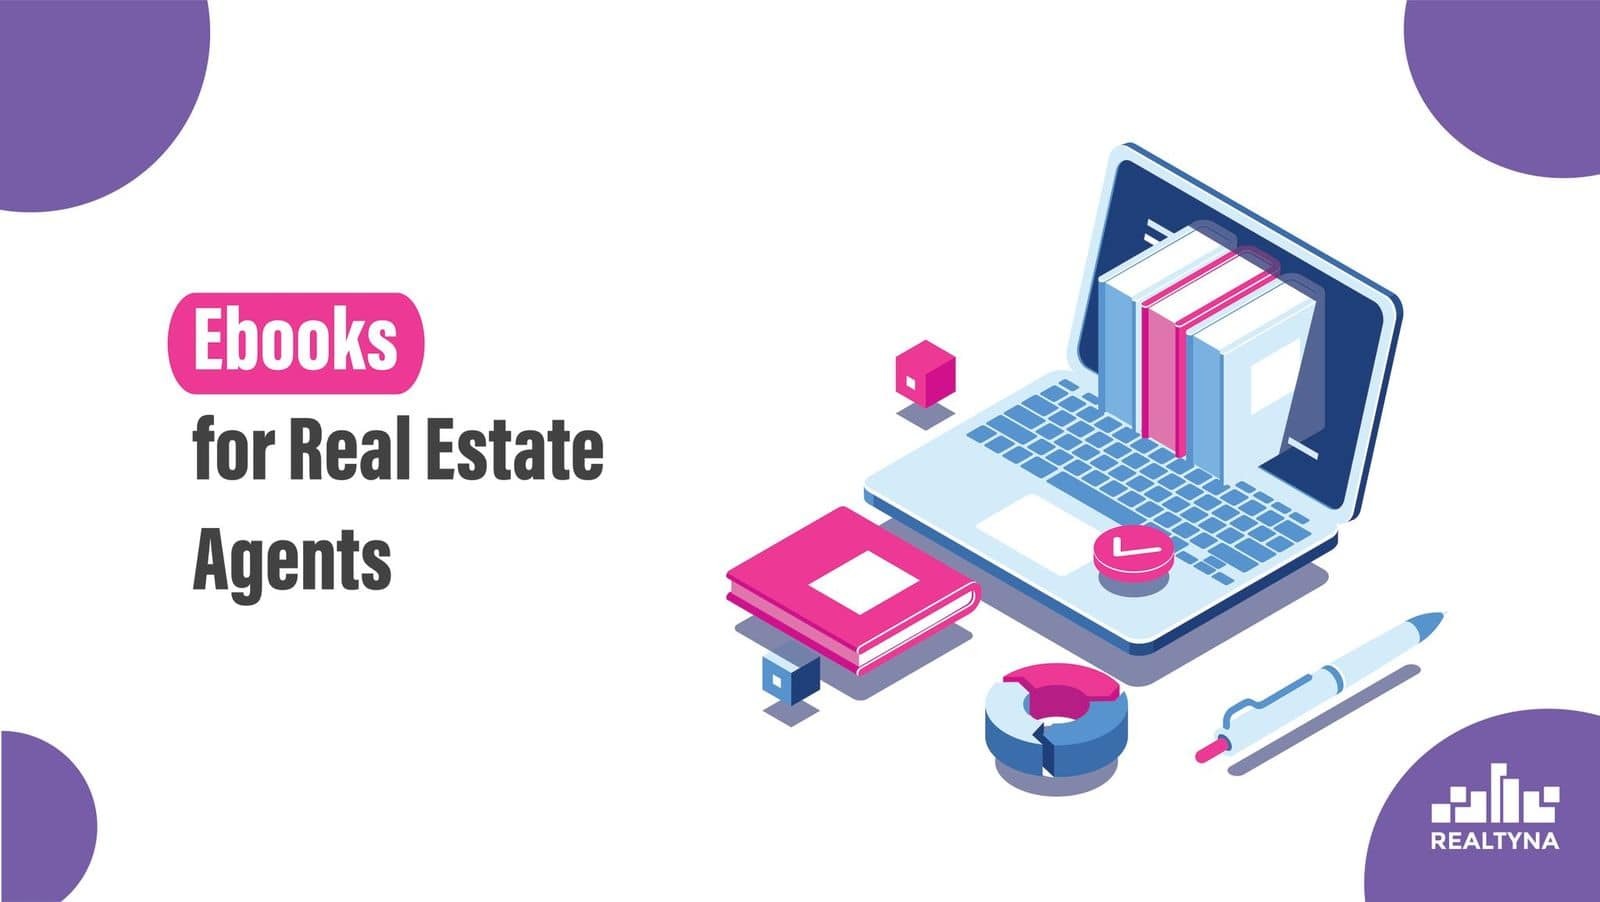 Ebooks for Real Estate Agents